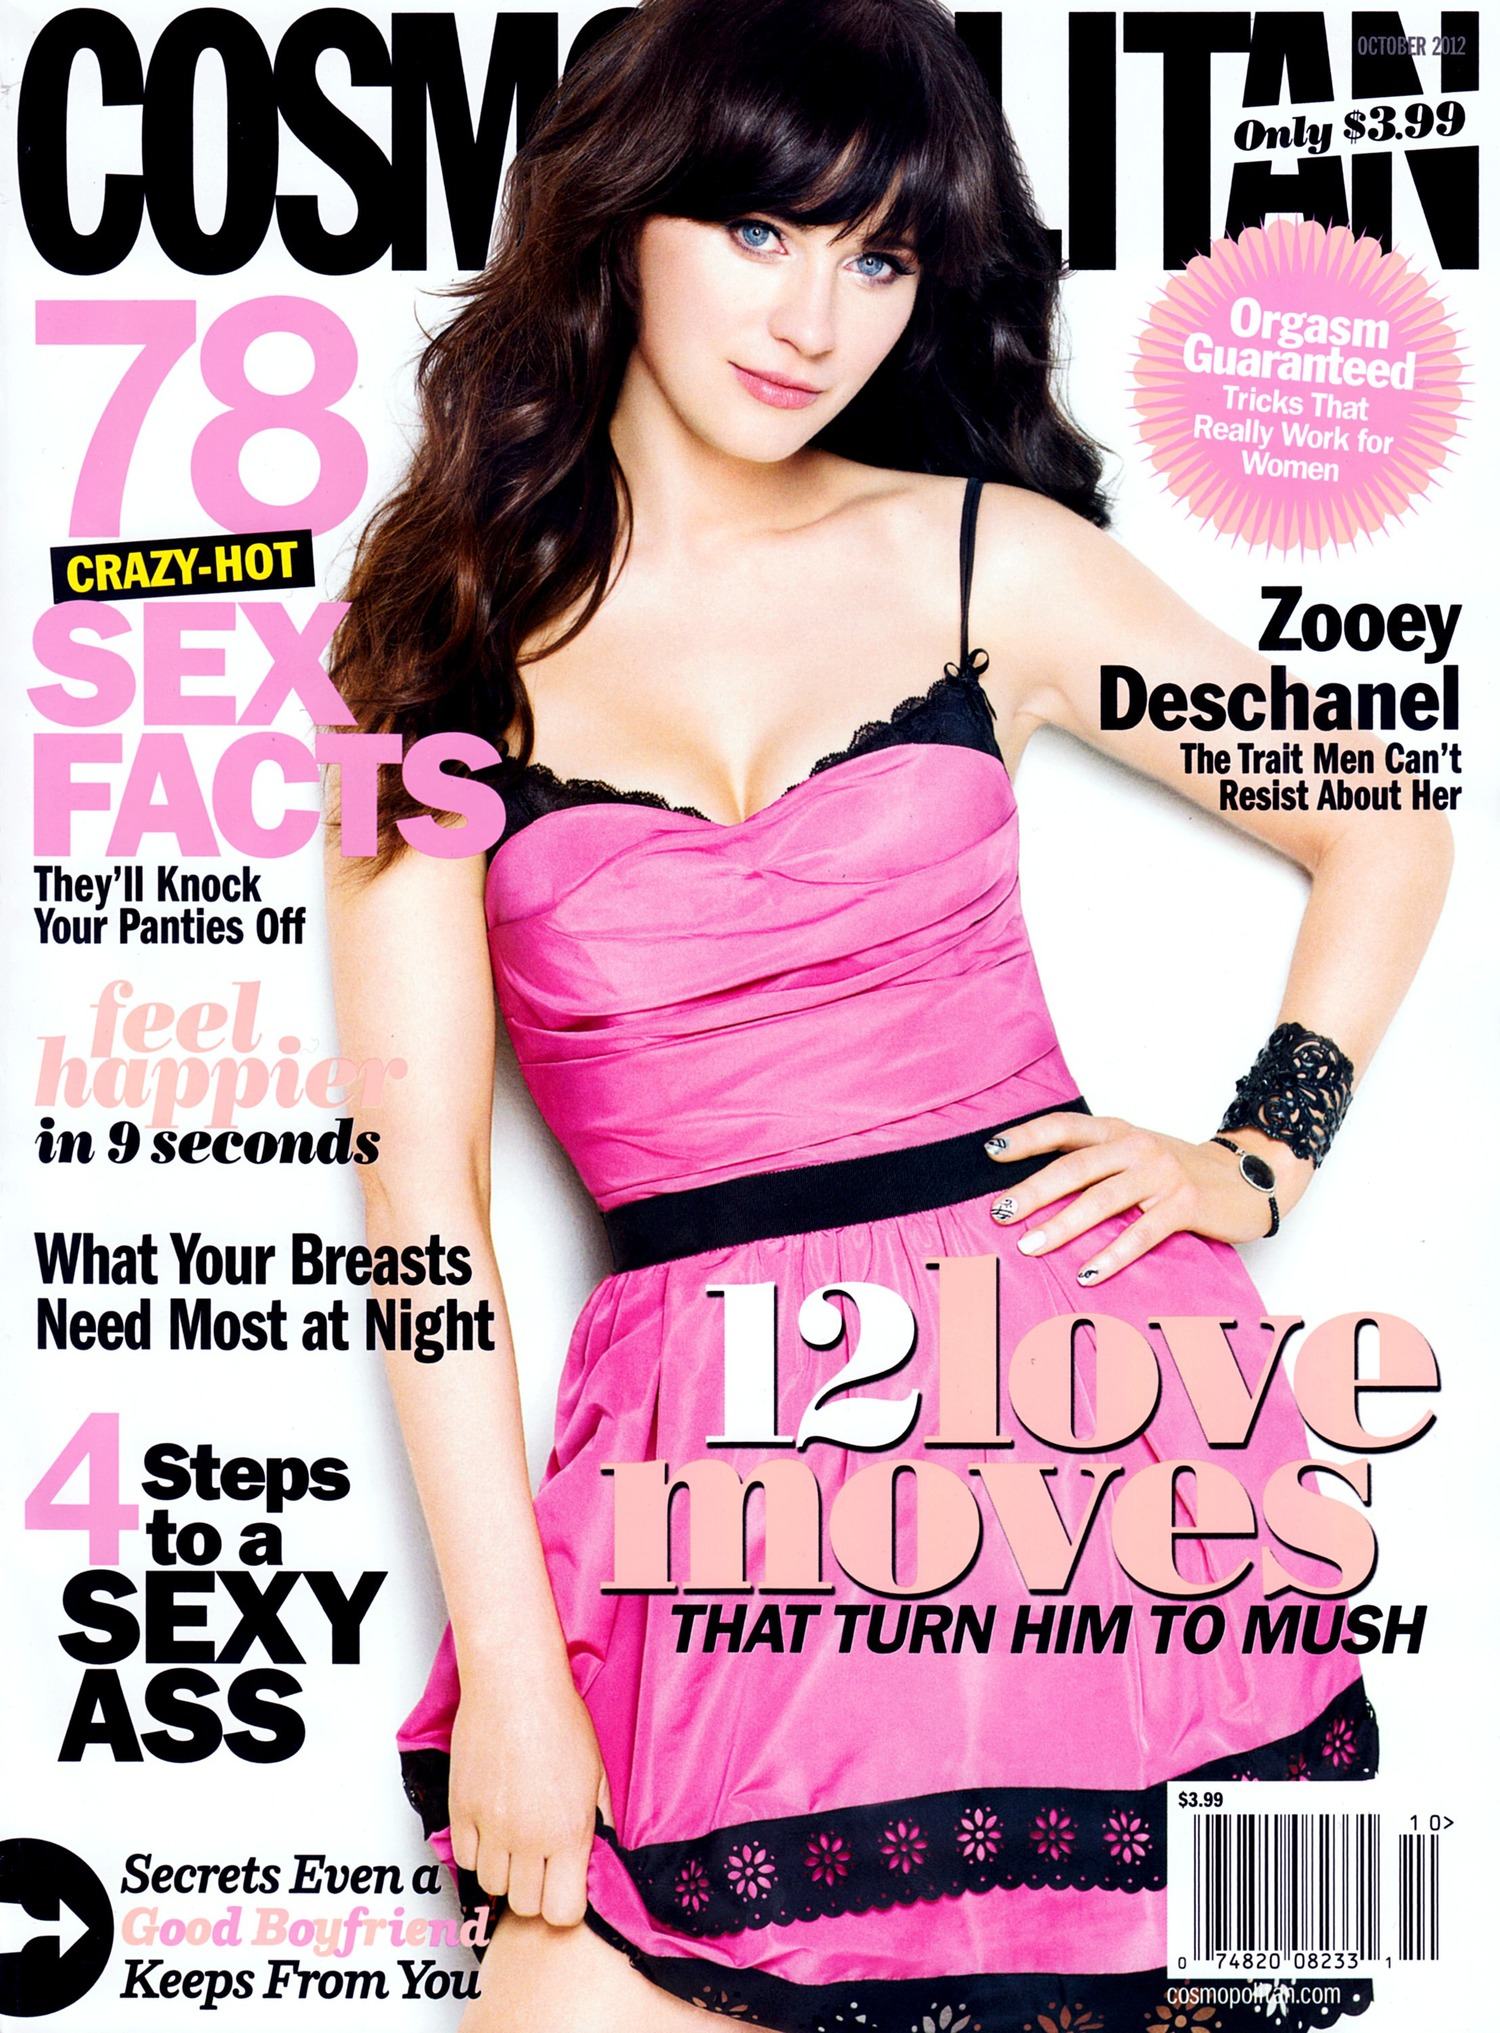 fashion_scans_remastered-zooey_deschanel-cosmopolitan_usa-october_2012-scanned_by_vampirehorde-hq-1.jpg